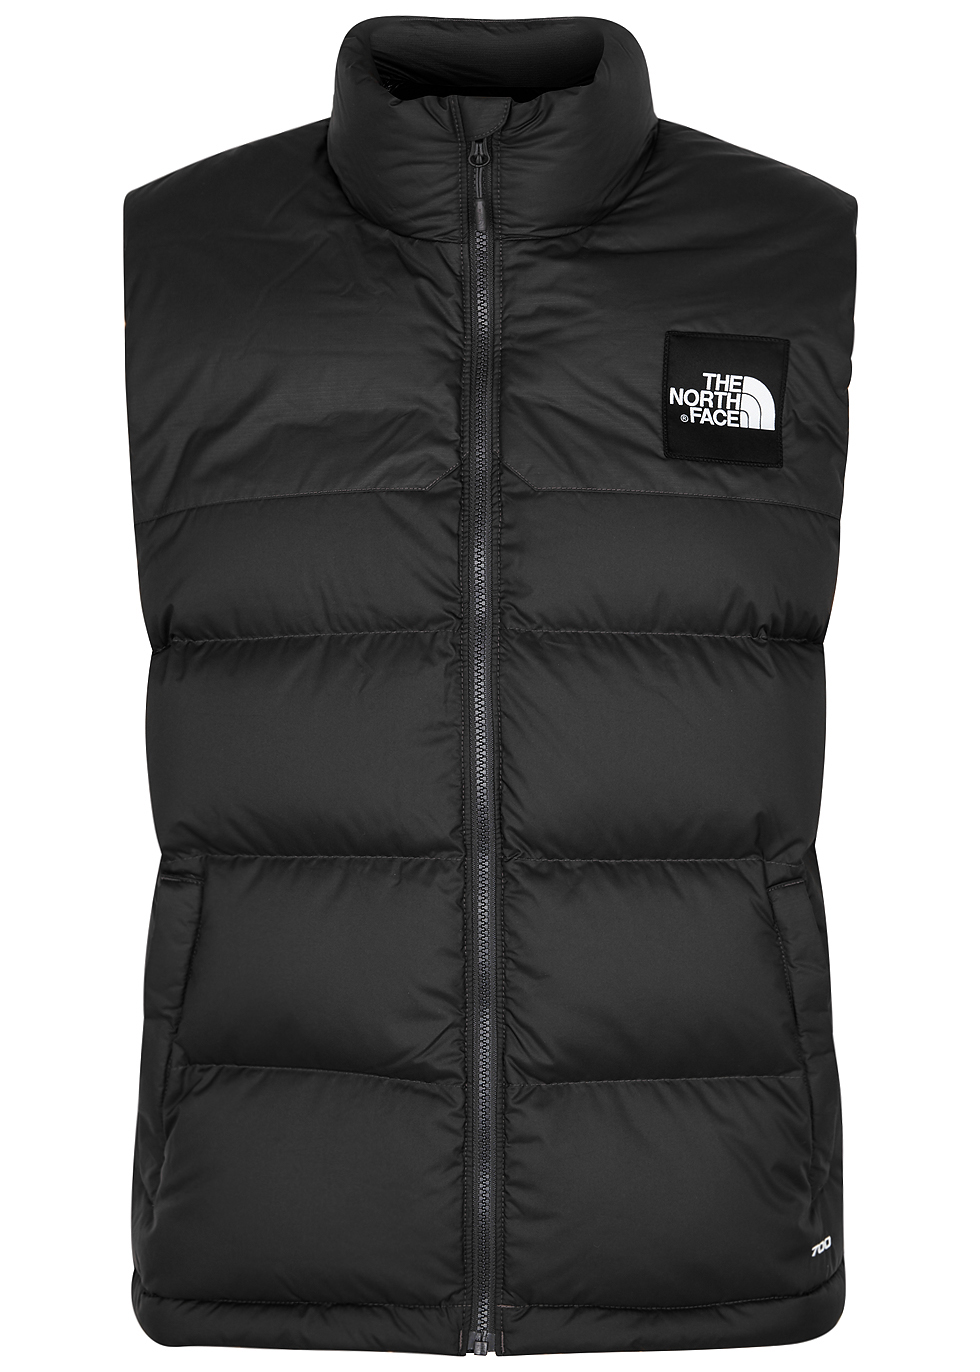 THE NORTH FACE 1992 NUPTUSE QUILTED SHELL GILET